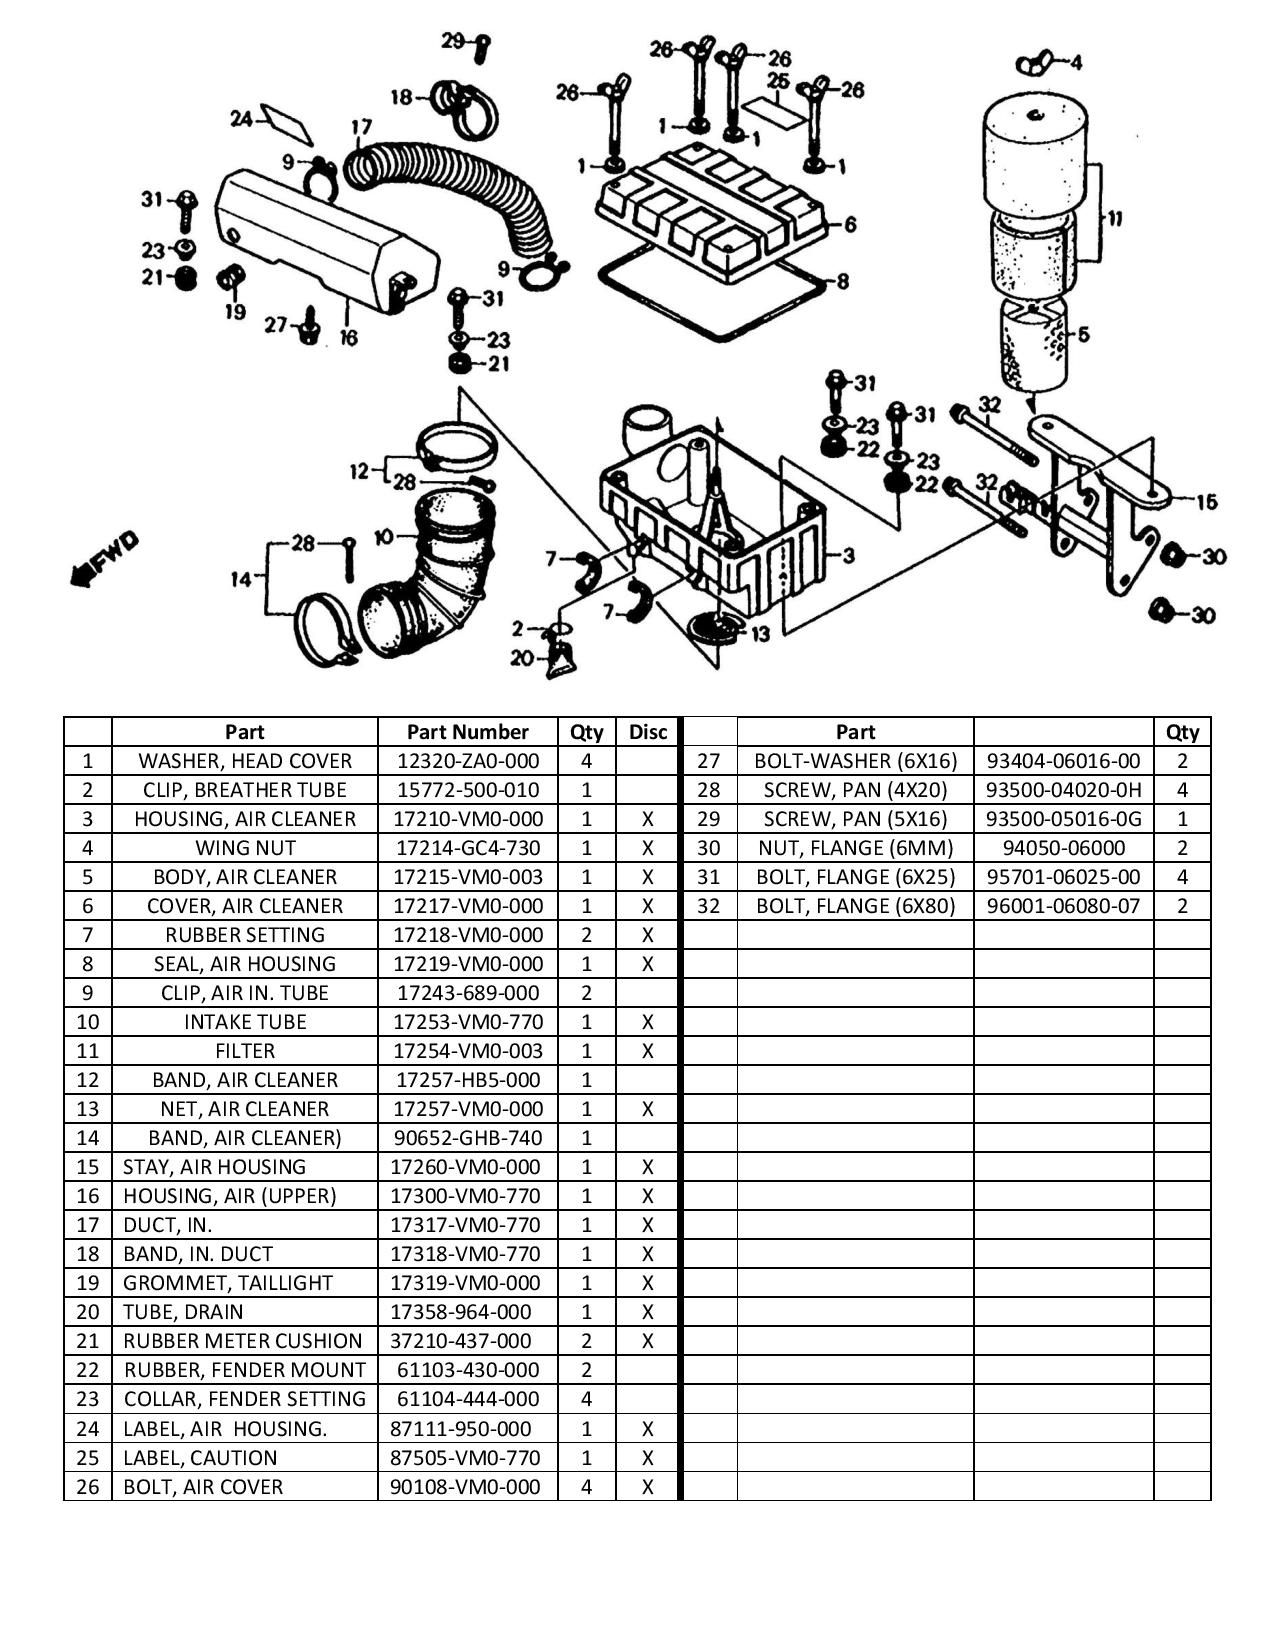 Honda Odyssey Fl350 Air Intake Diagram And Parts List